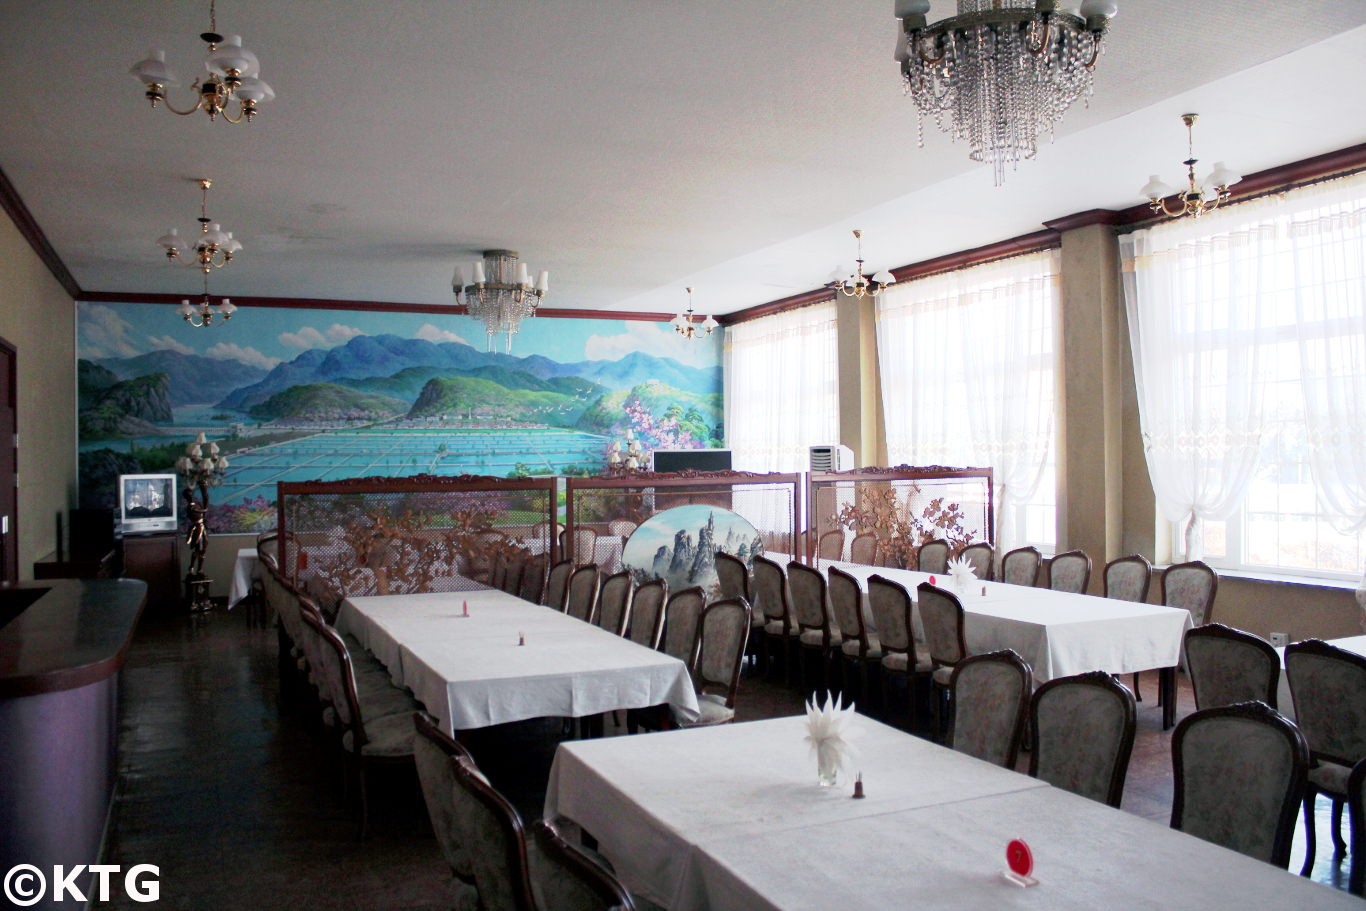 Restaurant in the 8th March Hotel in North Korea, DPRK. Visit Sariwon city in North Hwanghae province with KTG Tours